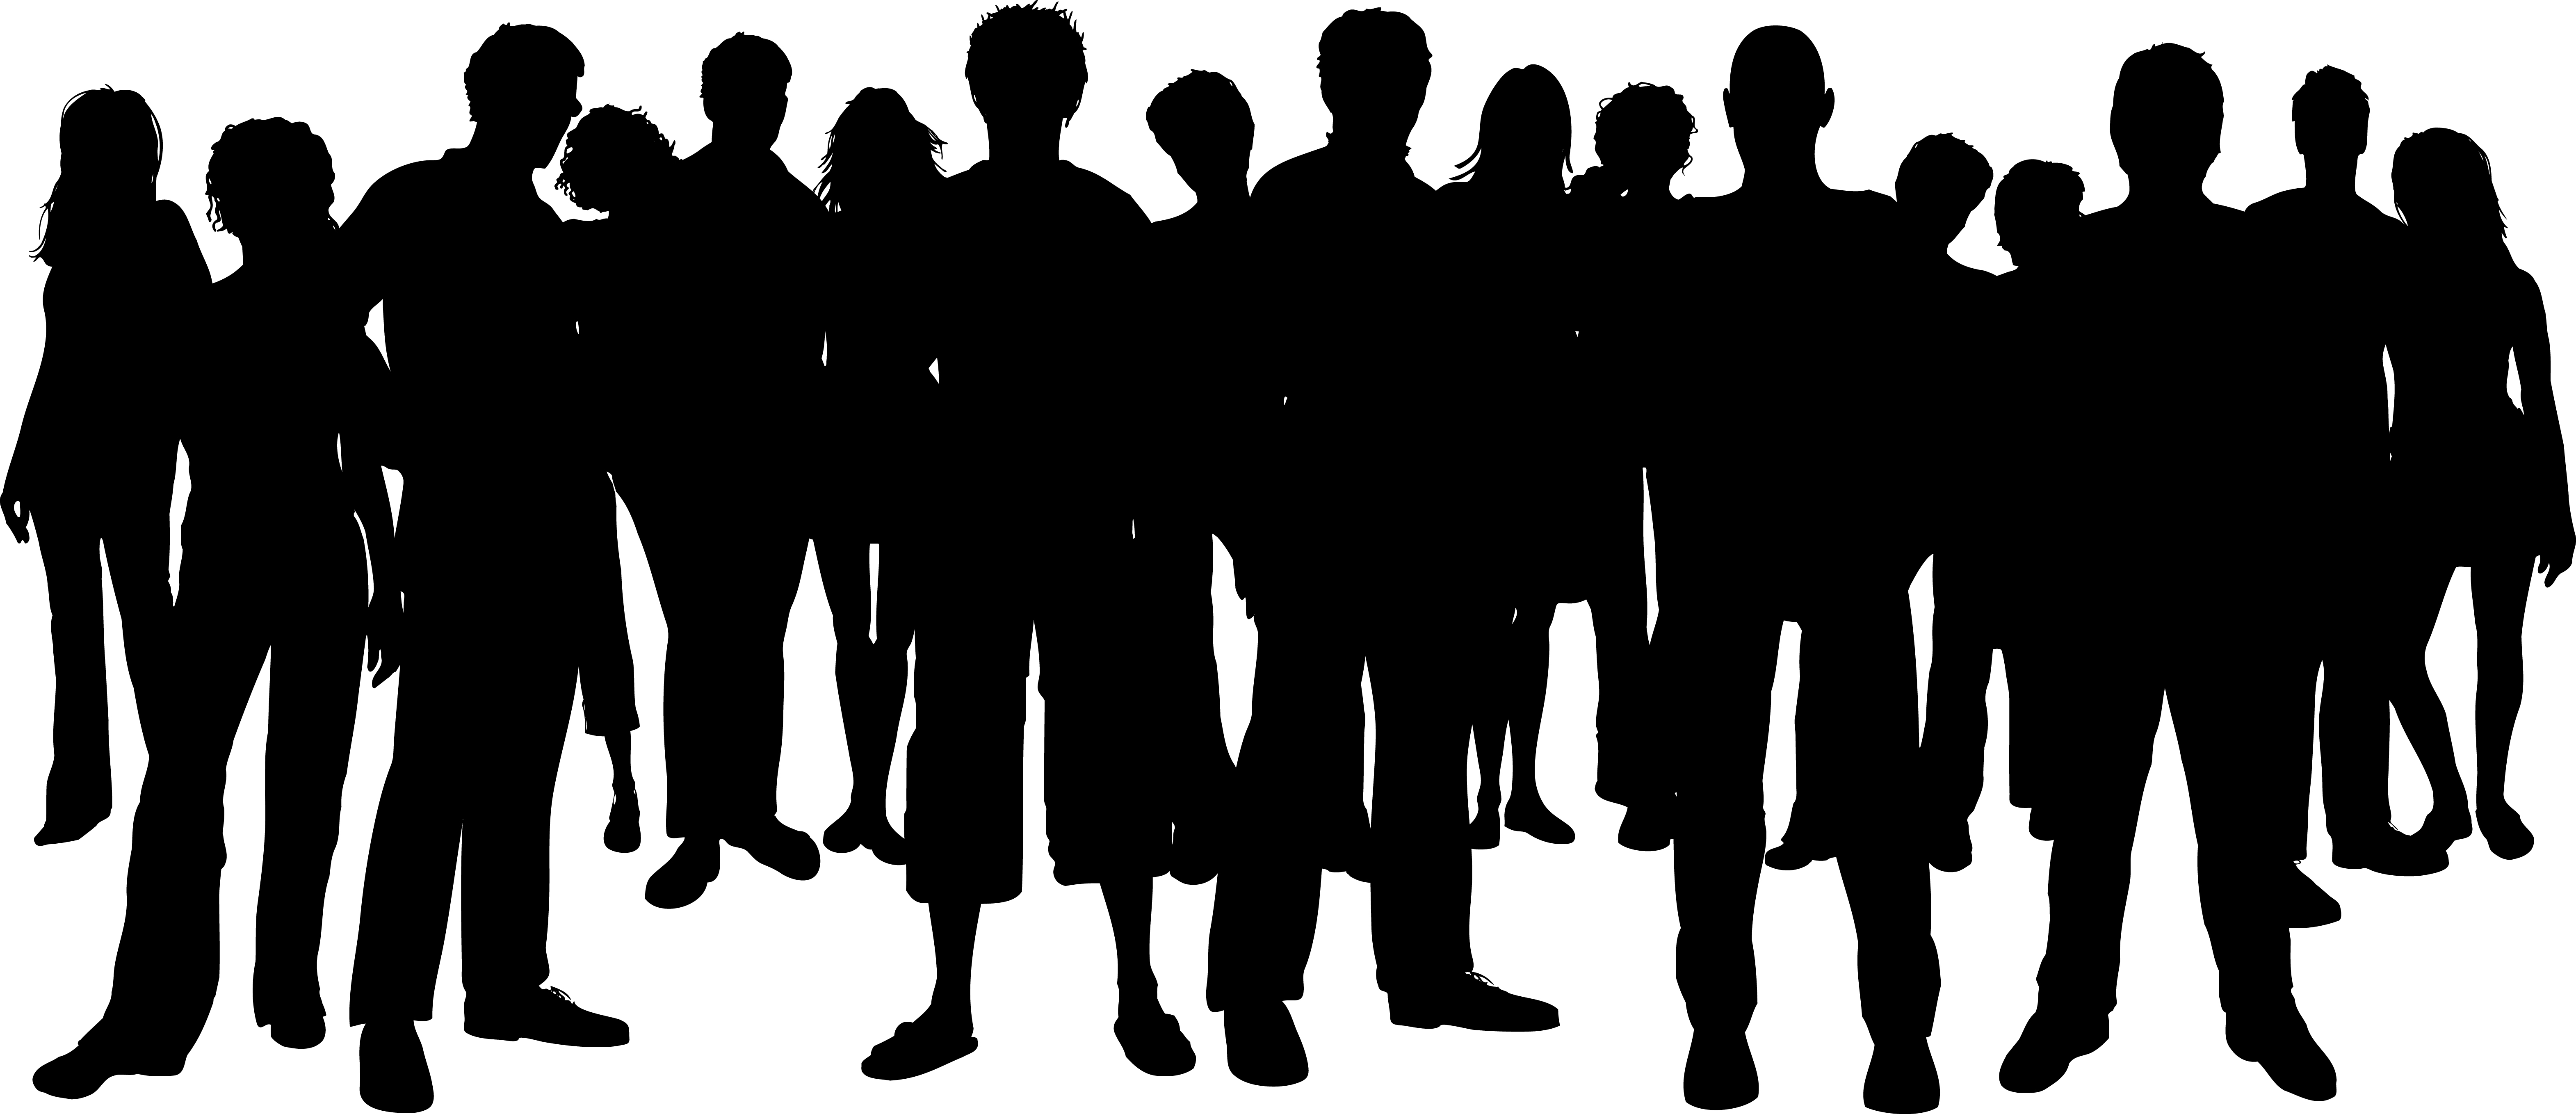 Free Images Black And White People Crowd Statue: Poeple Clipart